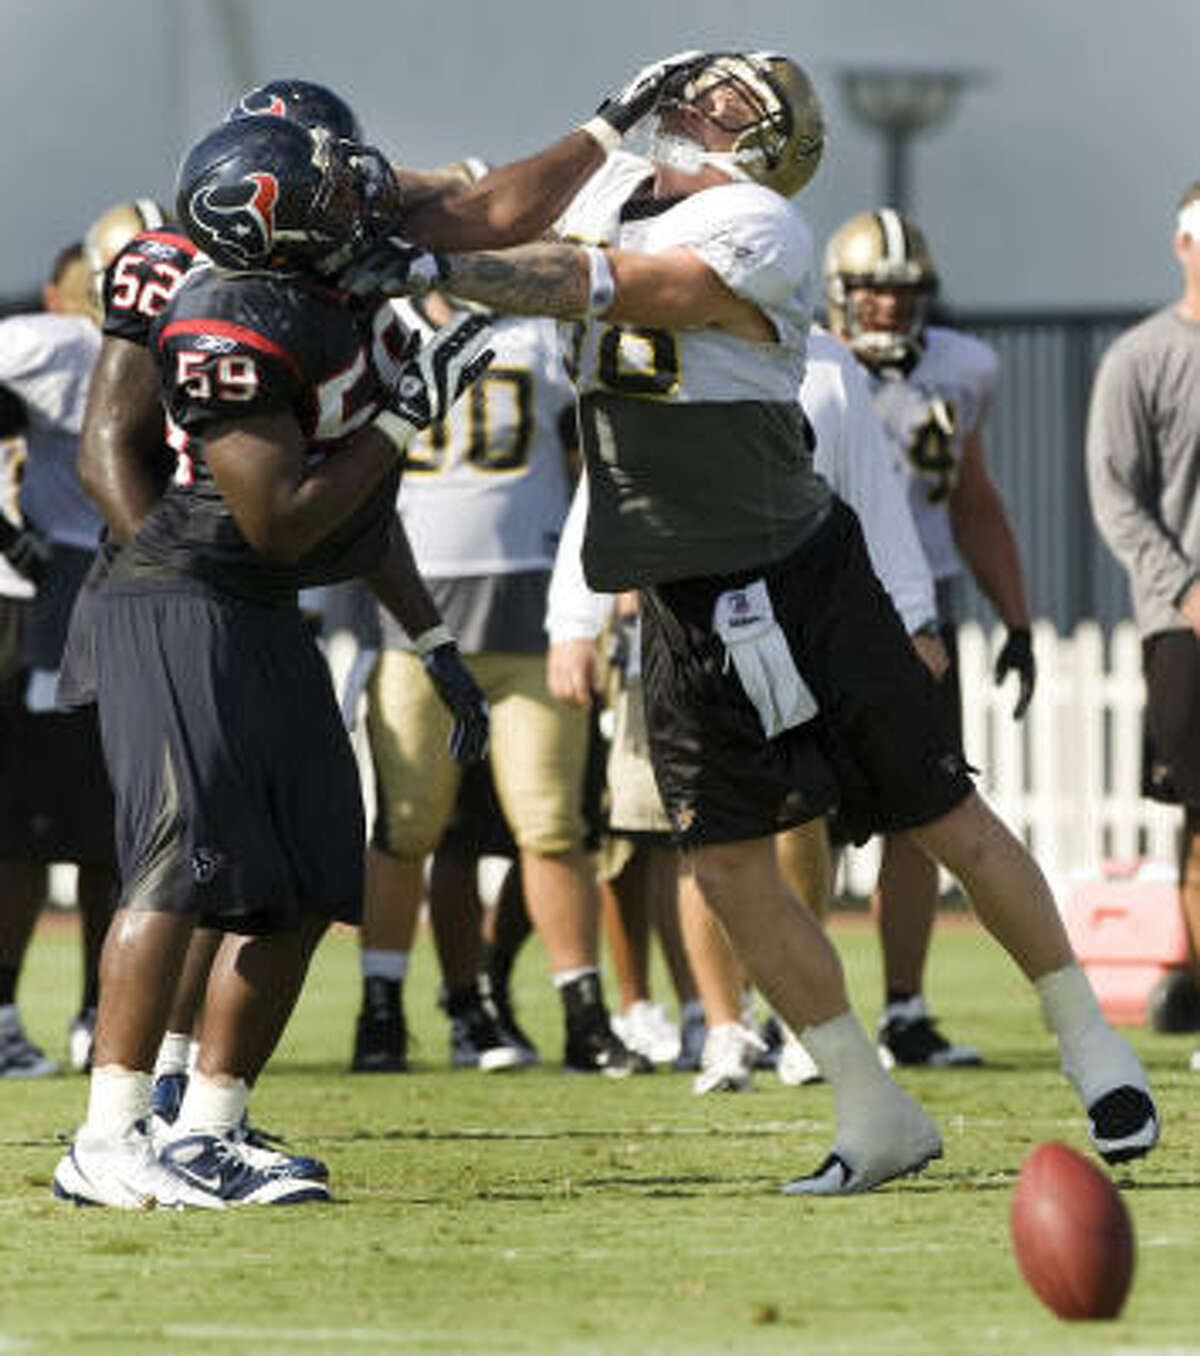 Texans linebacker DeMeco Ryans, left, and New Orleans Saints tight end Jeremy Shockey get into a fight during Thursday's morning practice.